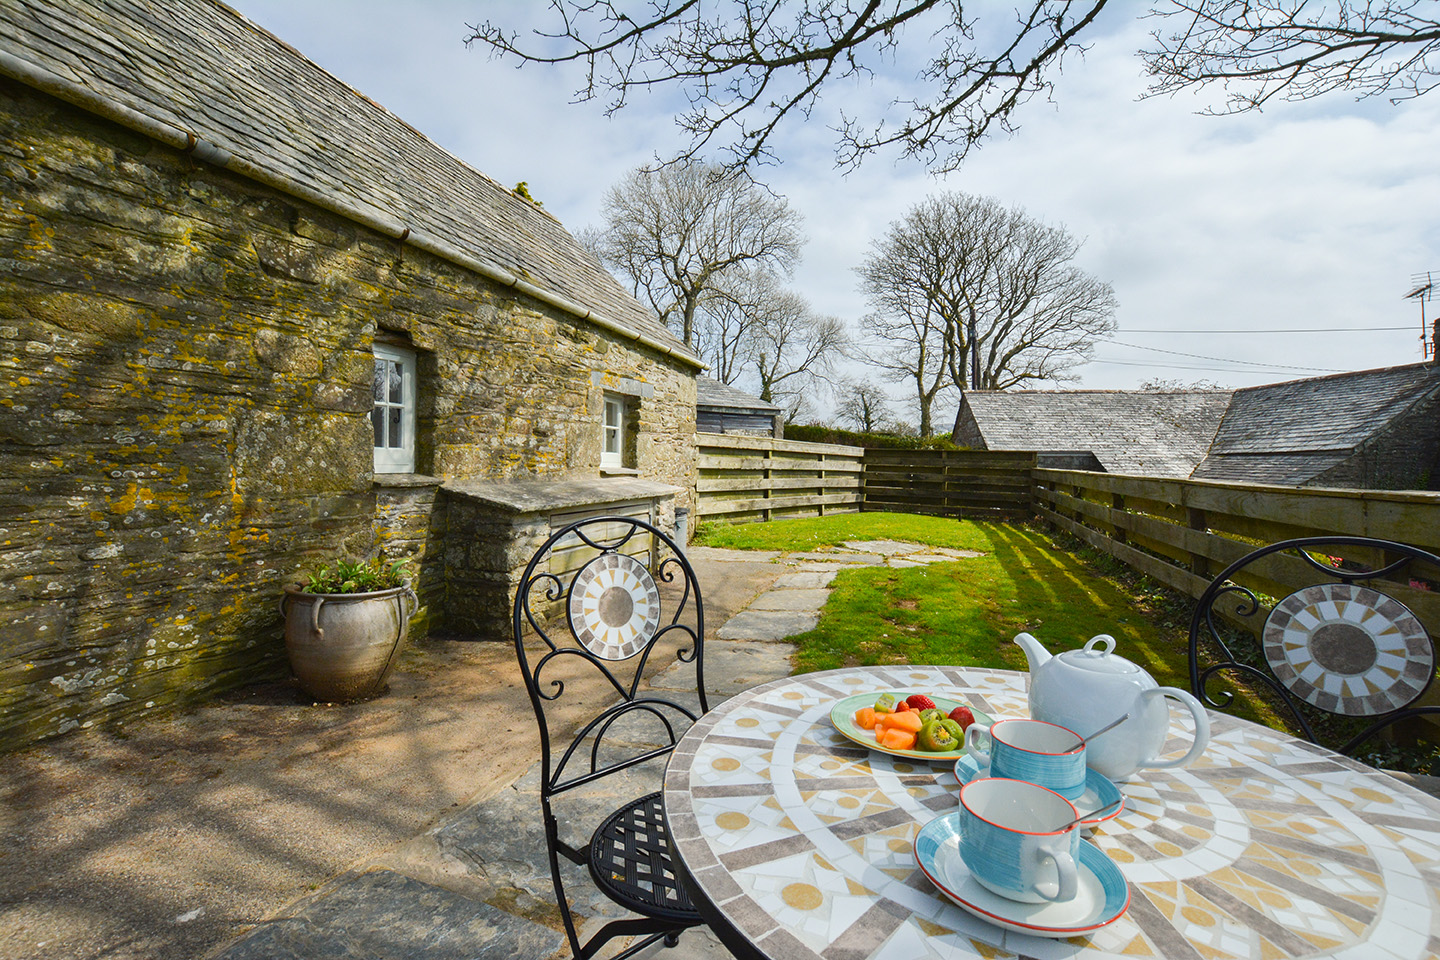 The garden at Jingles luxury self catering holiday cottage at Penrose Burden in North Cornwall near Bodmin Moor03.jpg